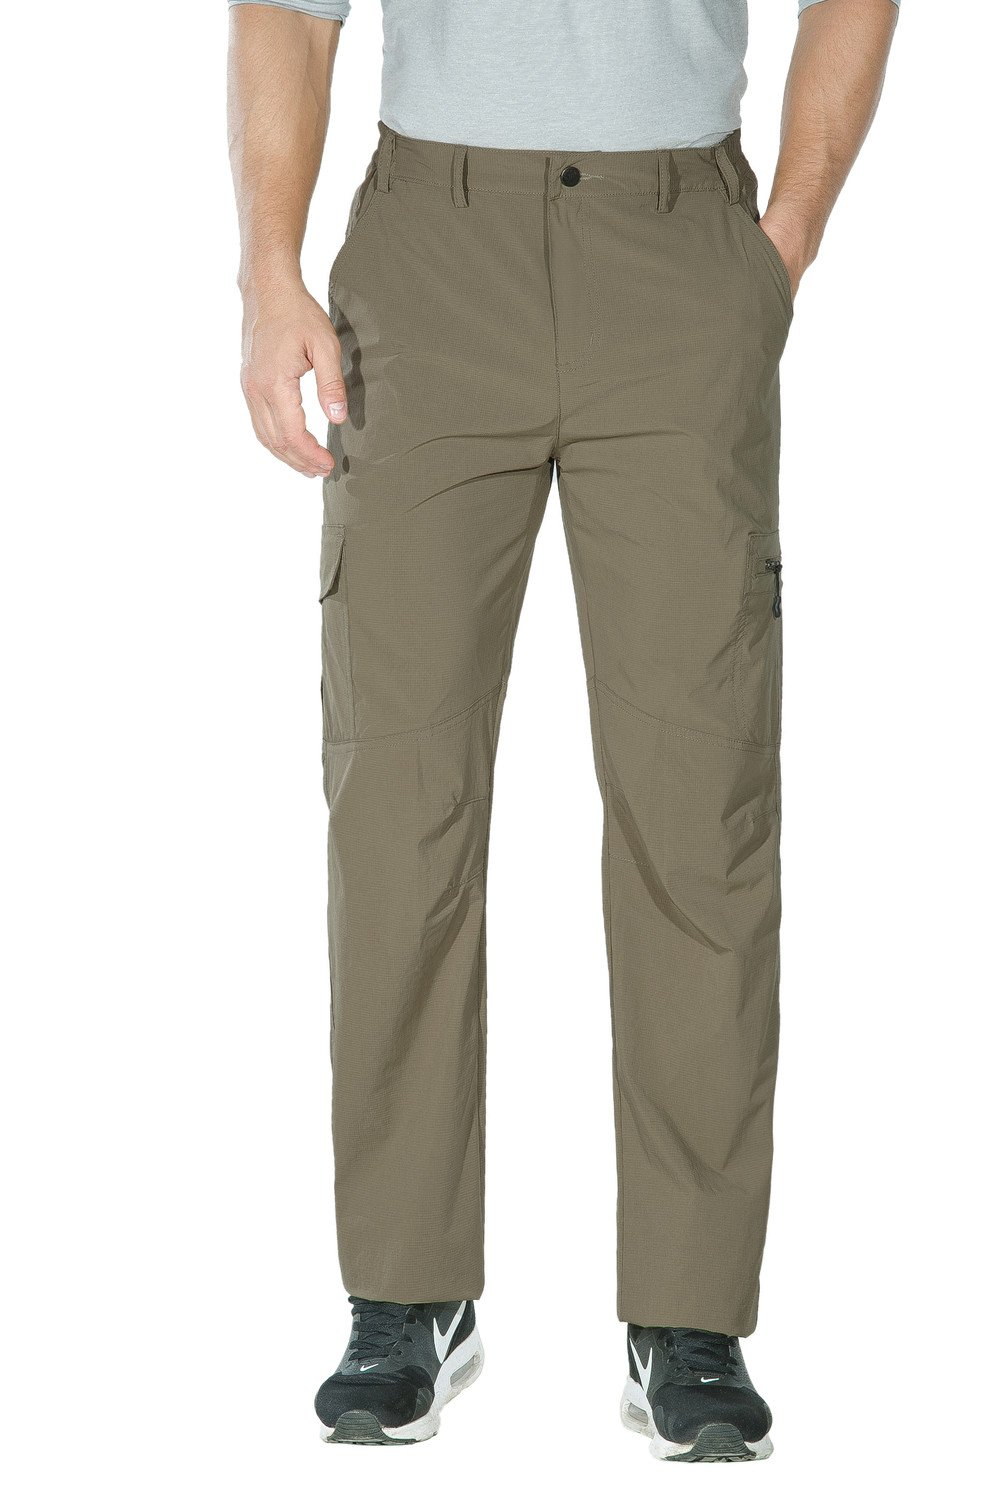 Unitop Men's Lightweight Water Resistant Quick Dry